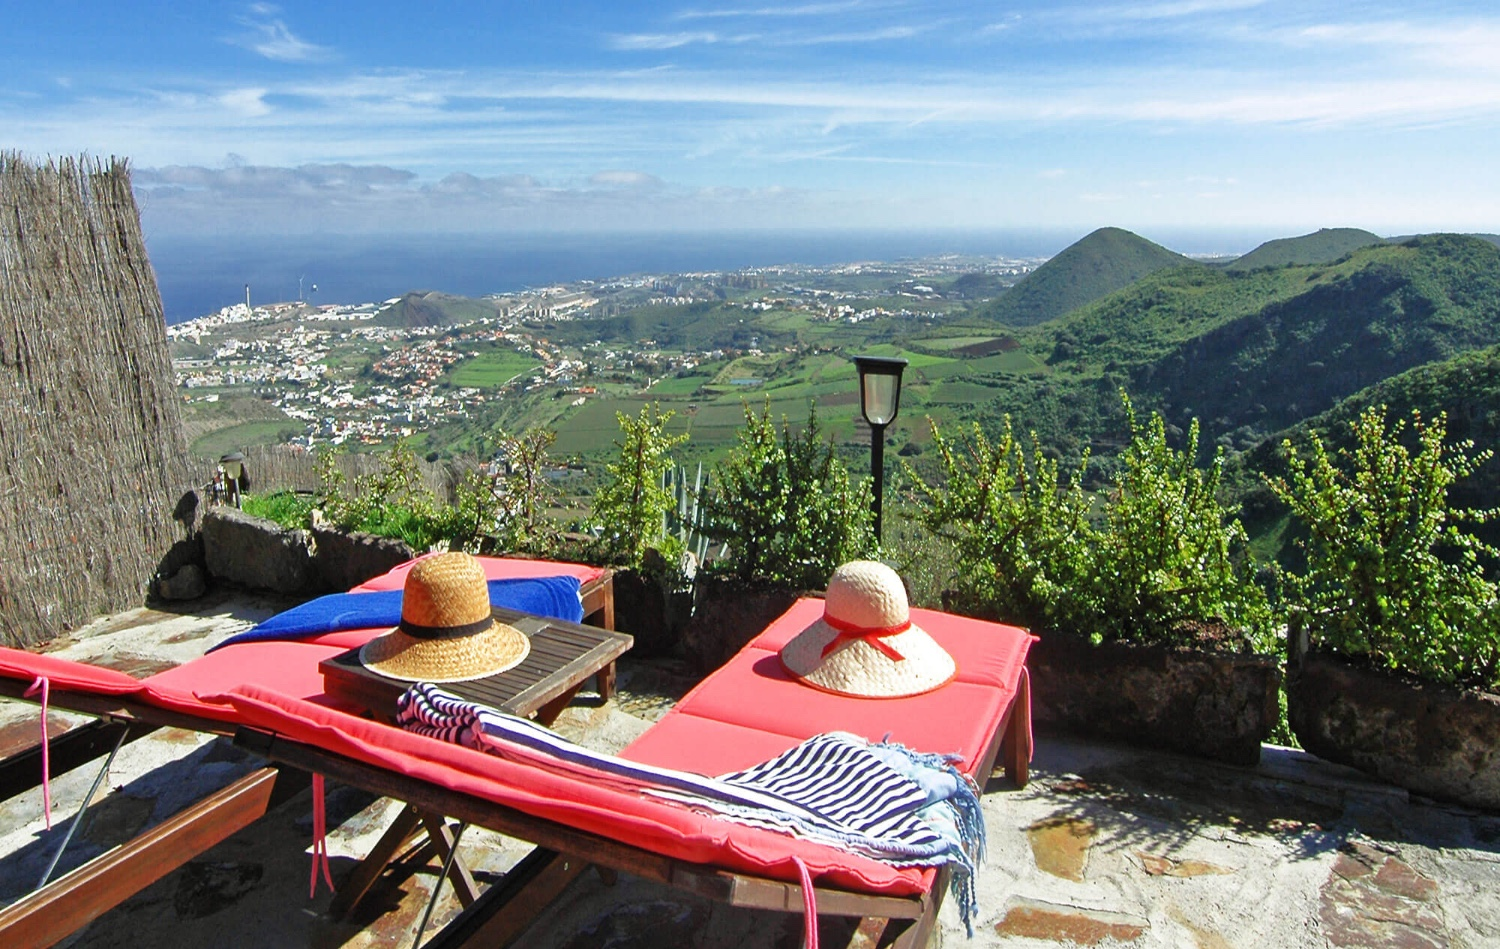 Holiday home with jacuzzi located on a large estate with splendid views of the sea and mountains